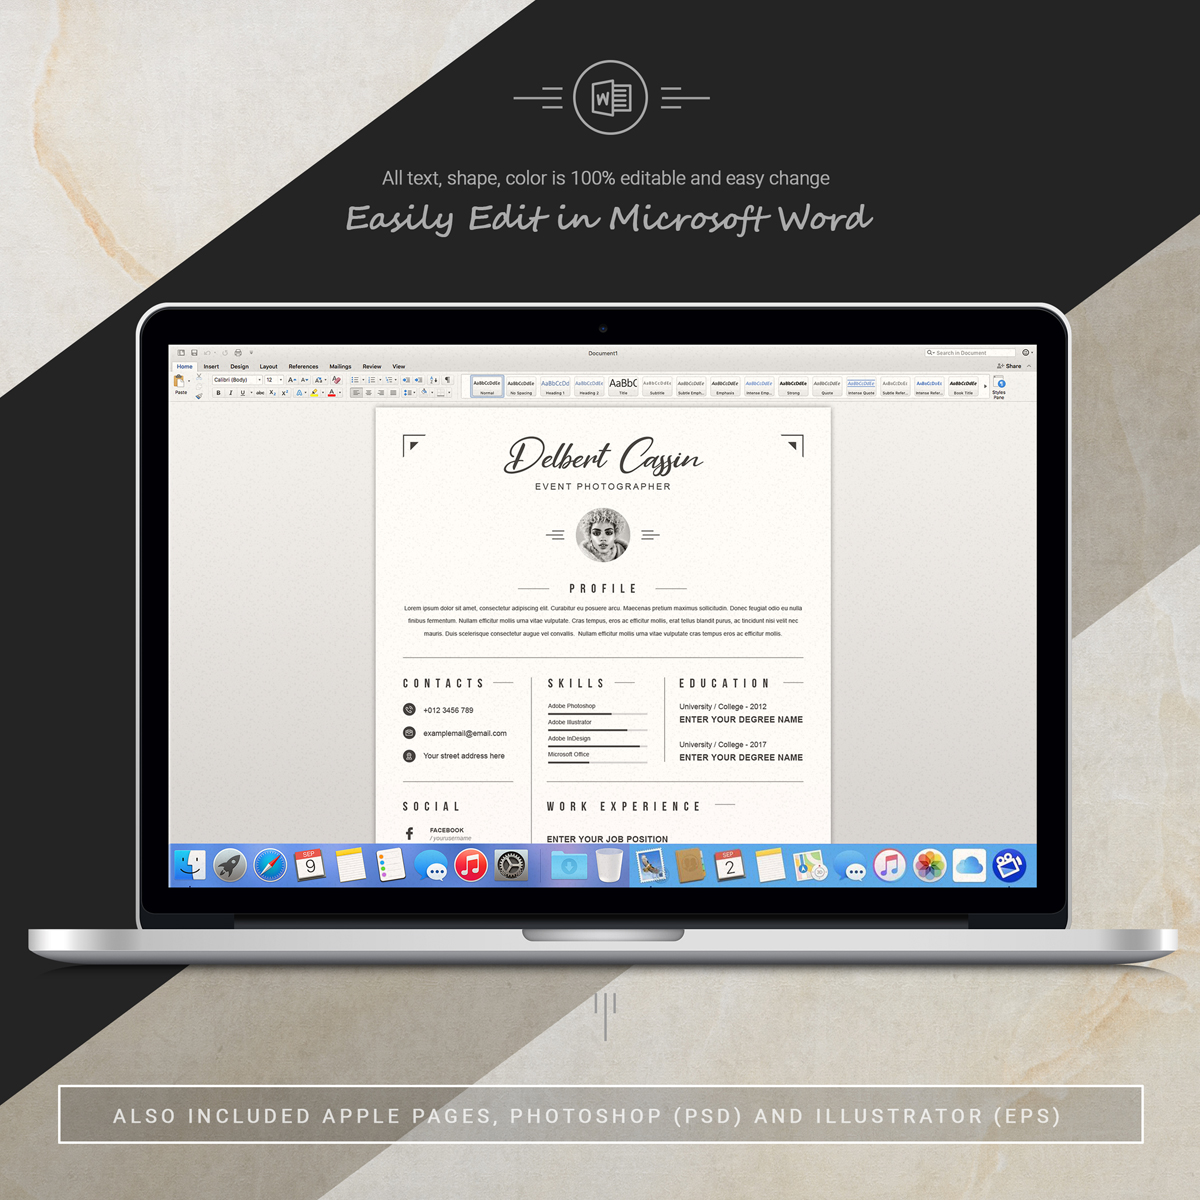 https://s3u.tmimgcdn.com/1860567-1578211071559_05_3-Pages-Free-Resume-MS-Word-File-Format-Design-Template.jpg